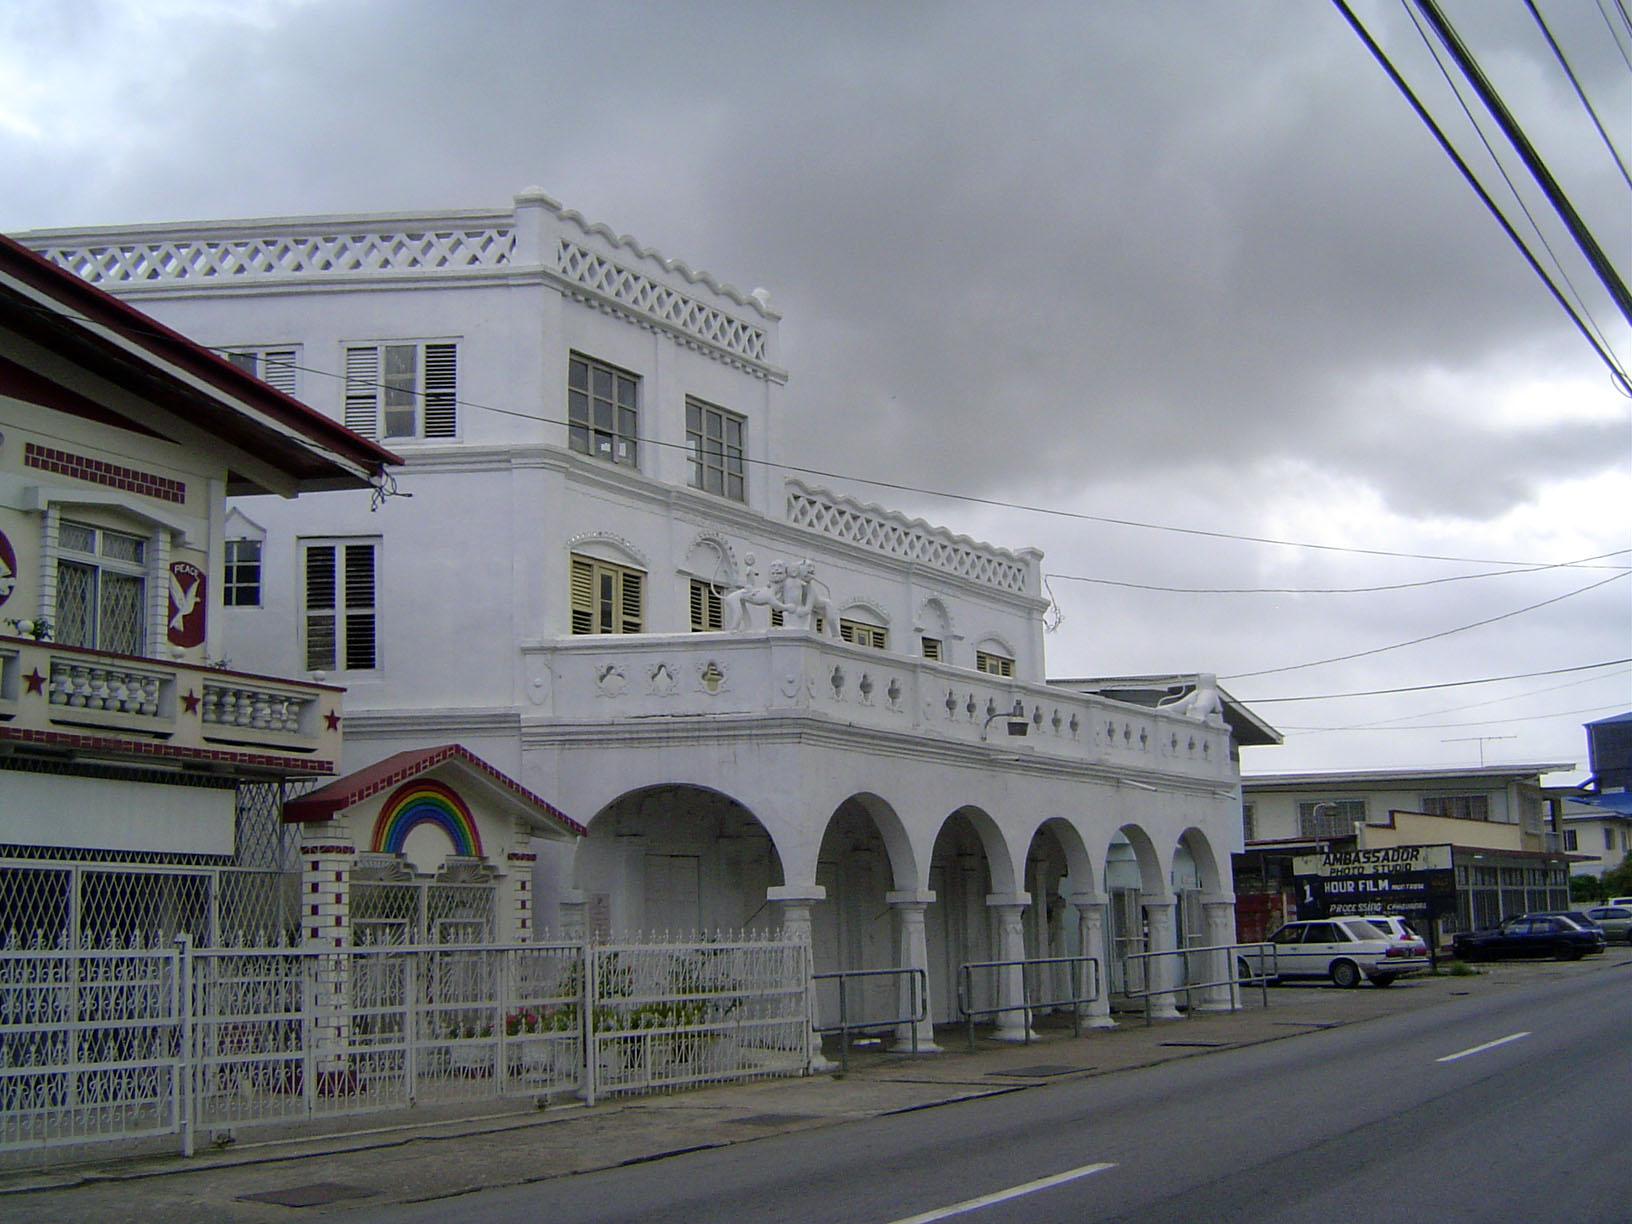 Trinidad: Trinidad: The Lingering Past